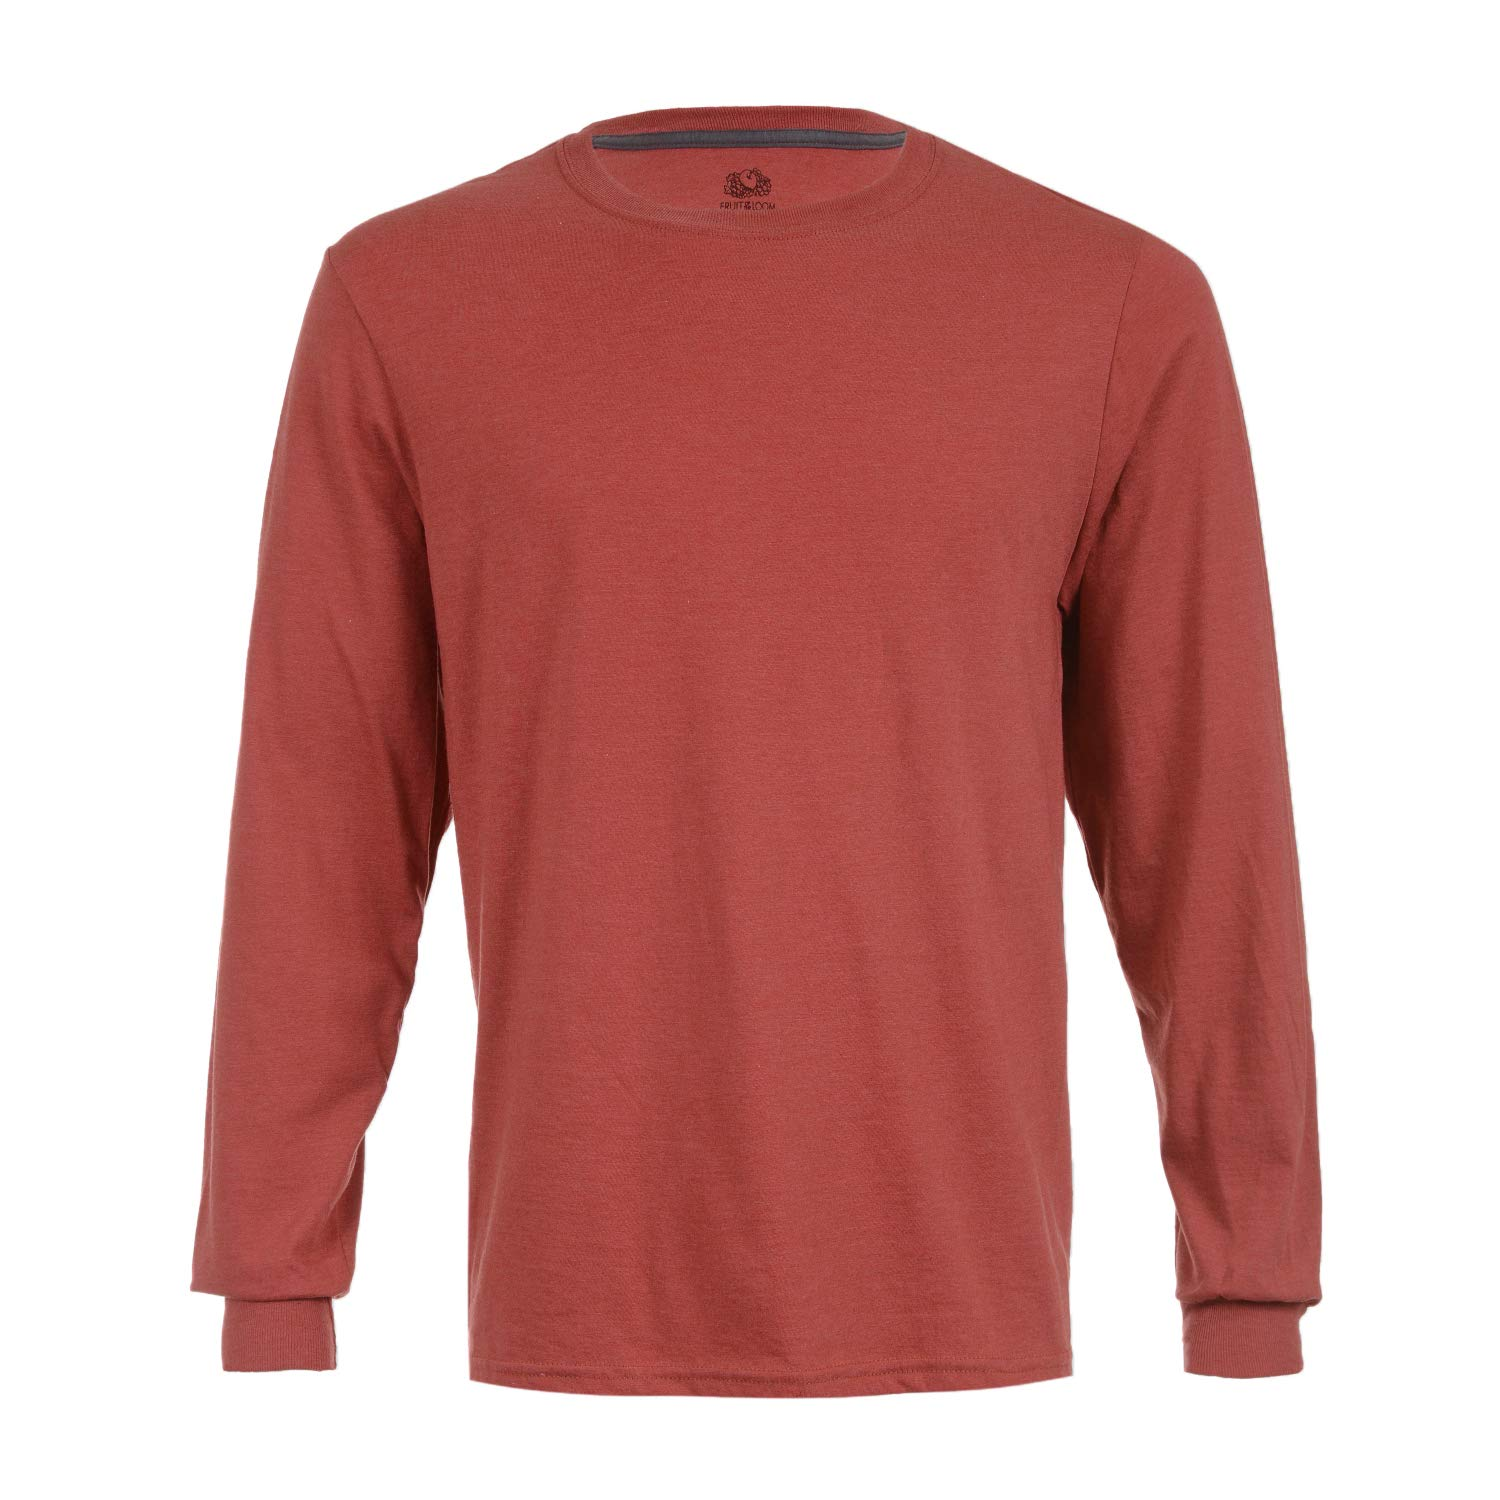 08c5b631 Fruit of the Loom Heavy Cotton HD 100% Cotton Long Sleeve T-Shirt |  Amazon.com